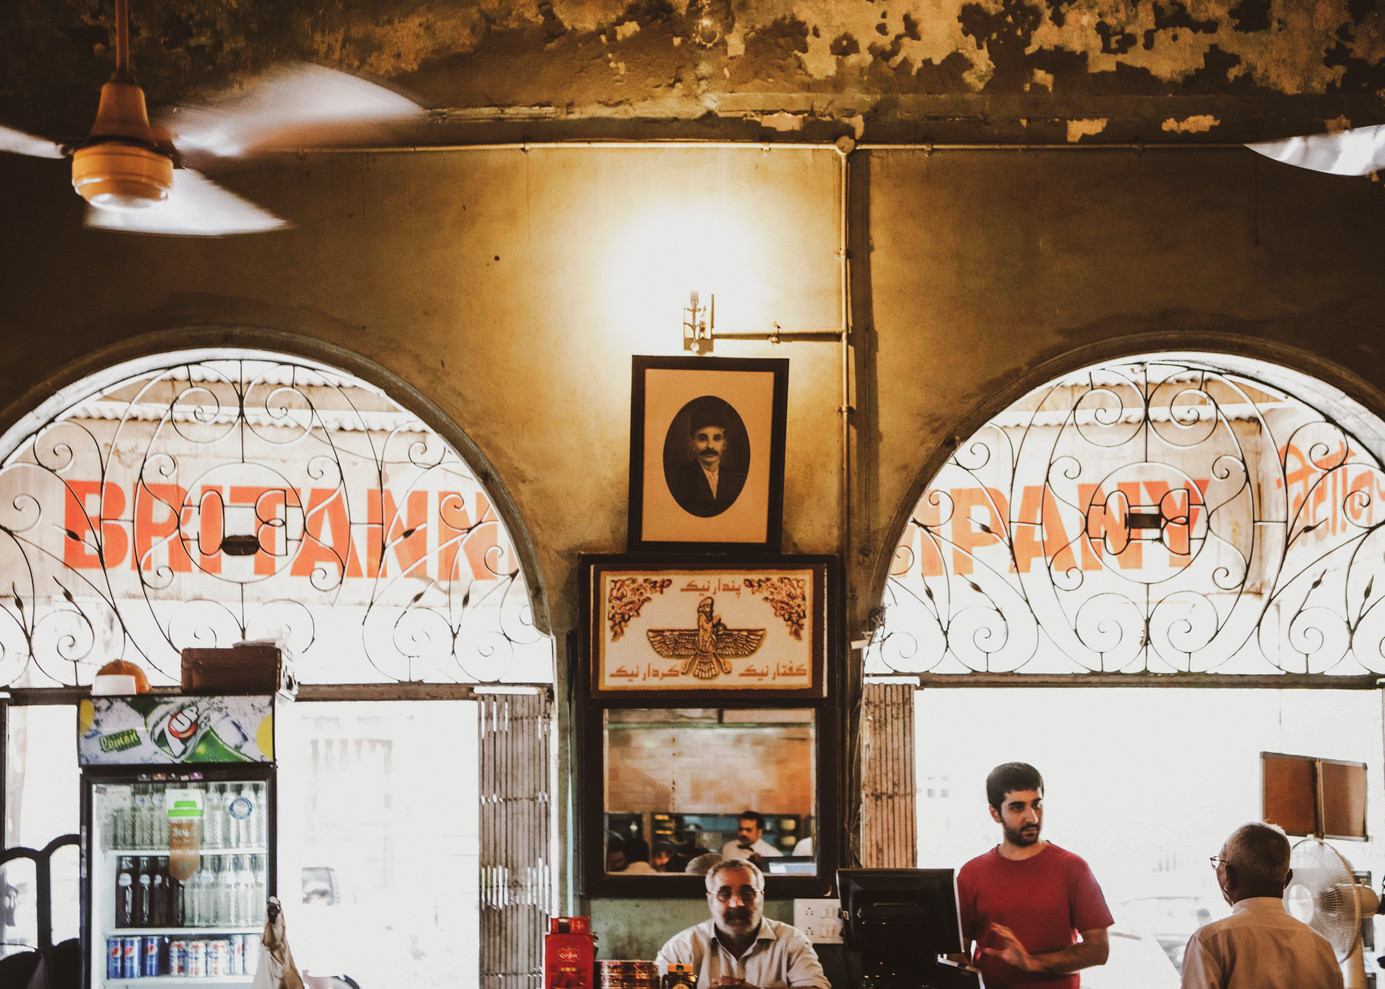 Britannia opened its doors in 1923 when Rashid Kohinoor came to Bombay and decided to get into the restaurant business. Among the most popular of its kind in Mumbai, the cafe at Ballard Estate has now entered its third generation.